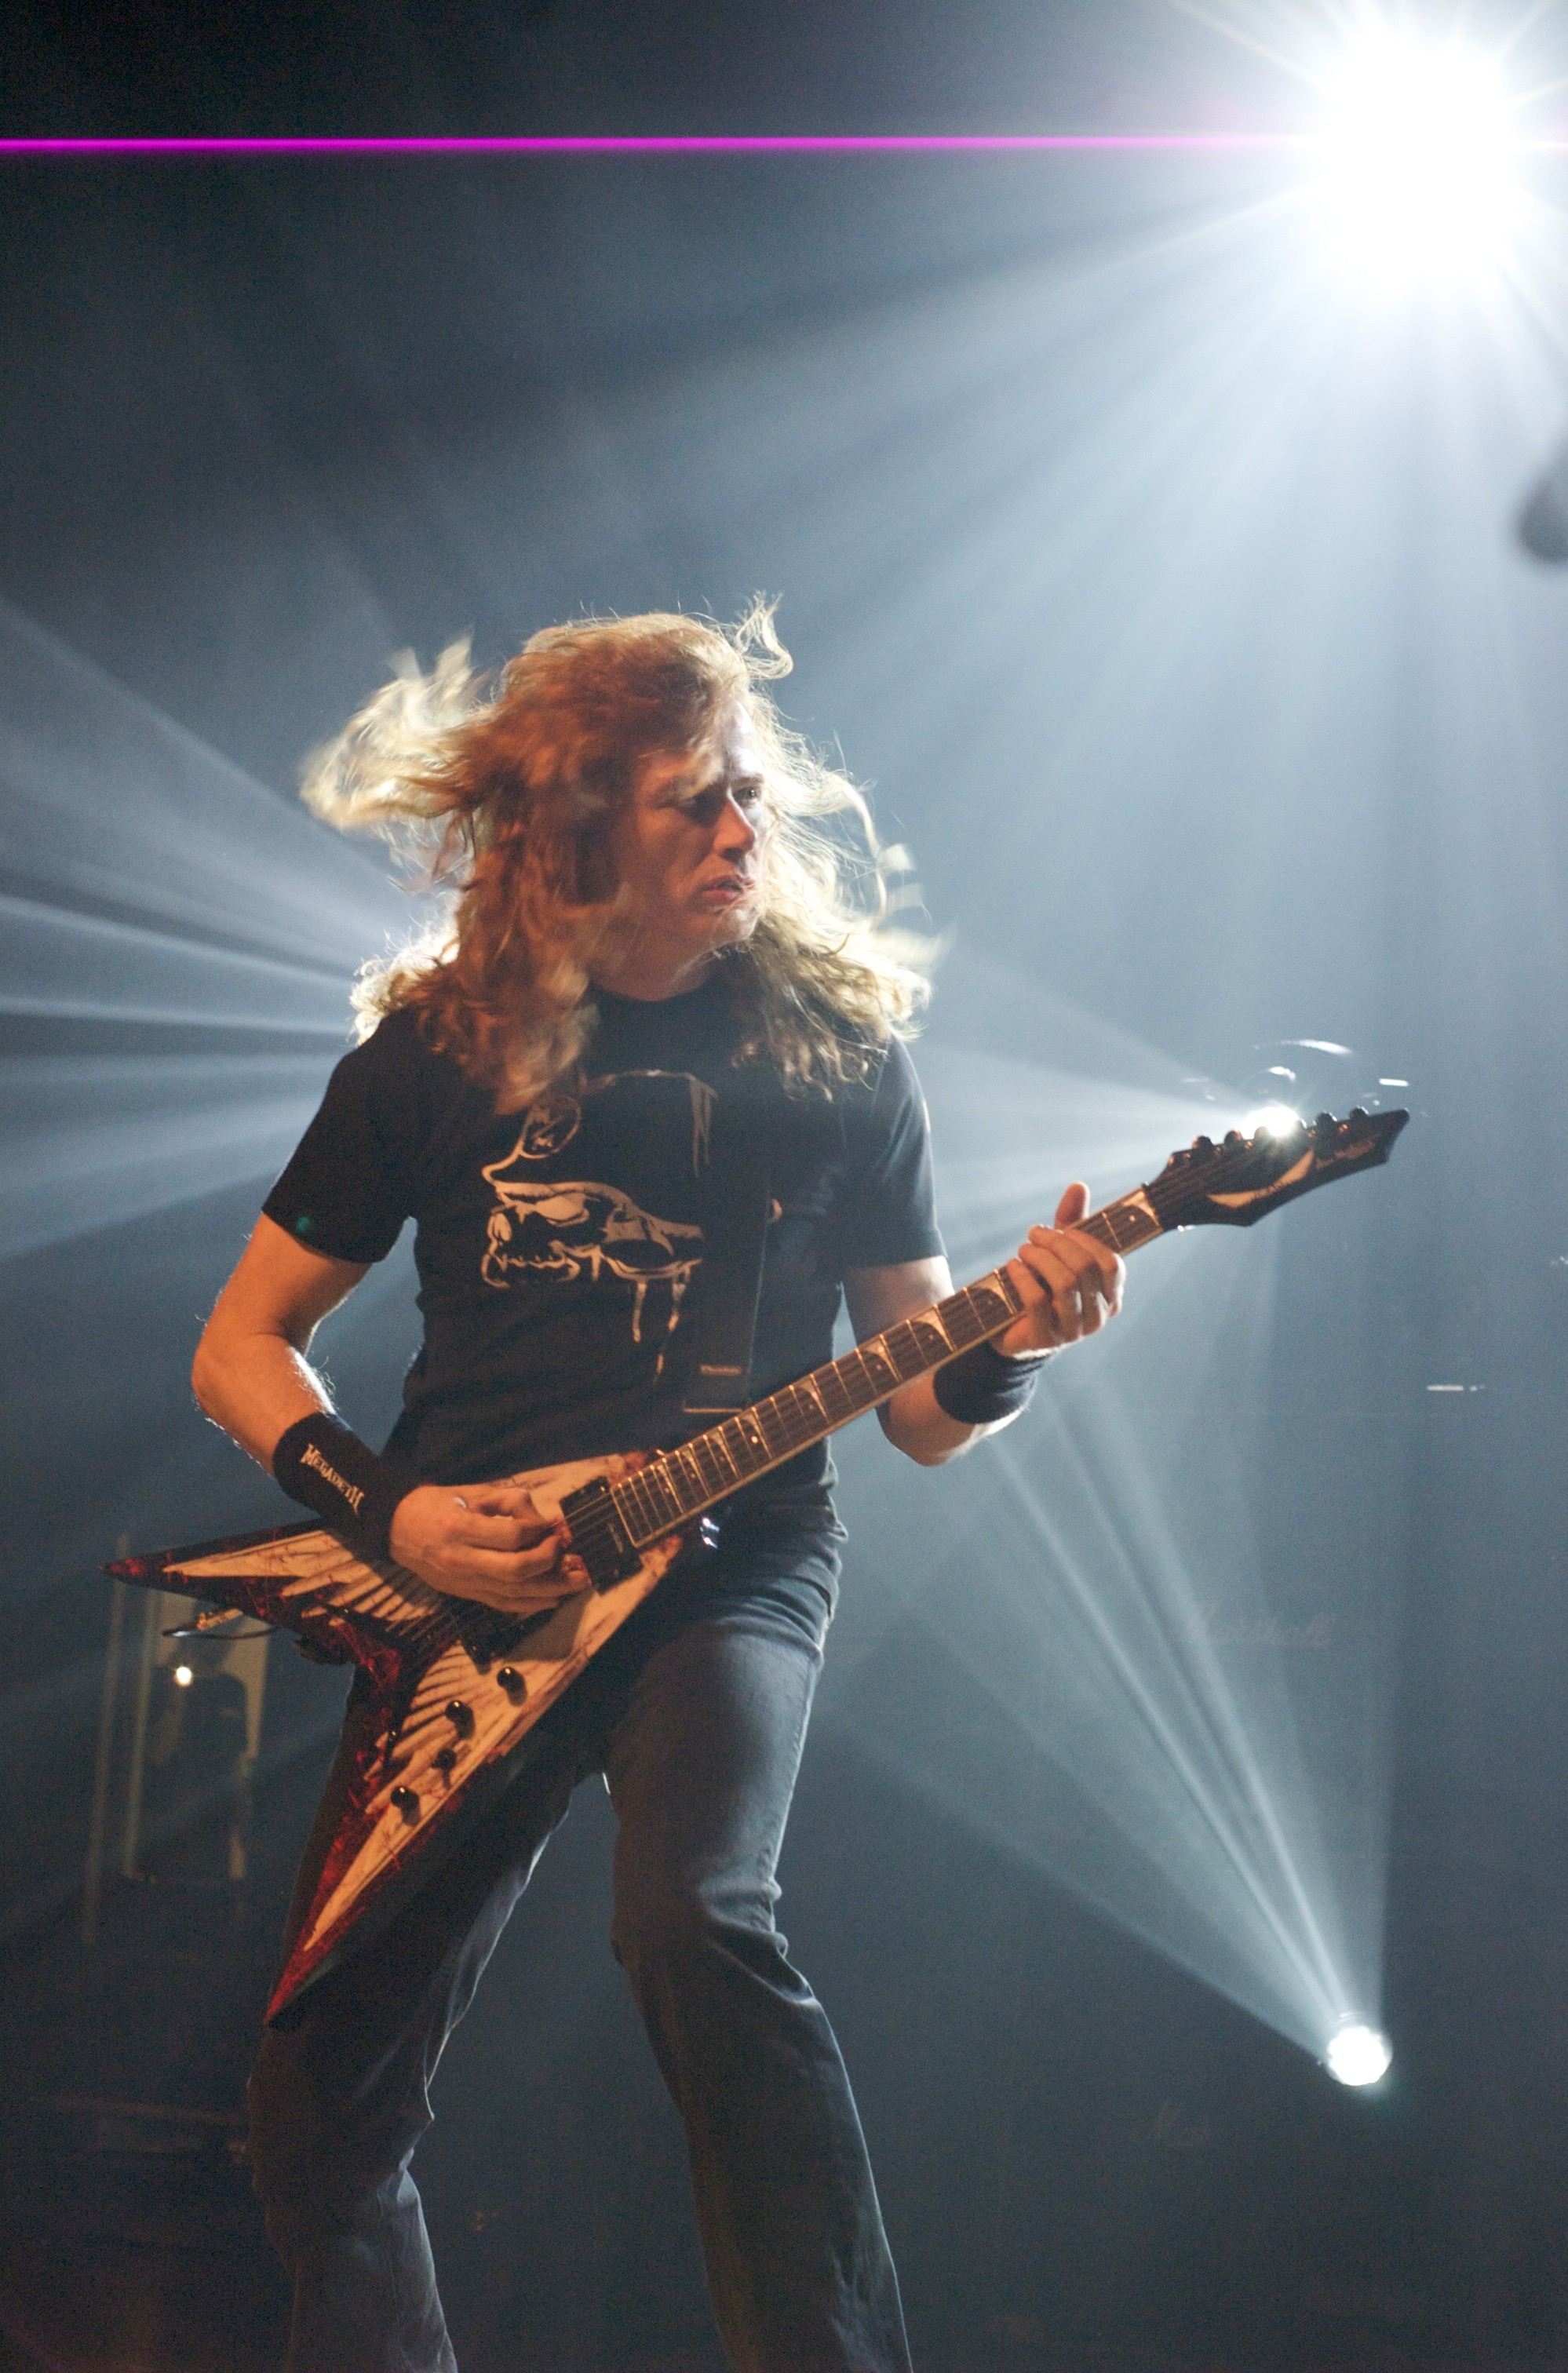 Res: 1998x3024, Megadeth, Dave Mustaine, electric guitars - Free Wallpaper /  WallpaperJam.com